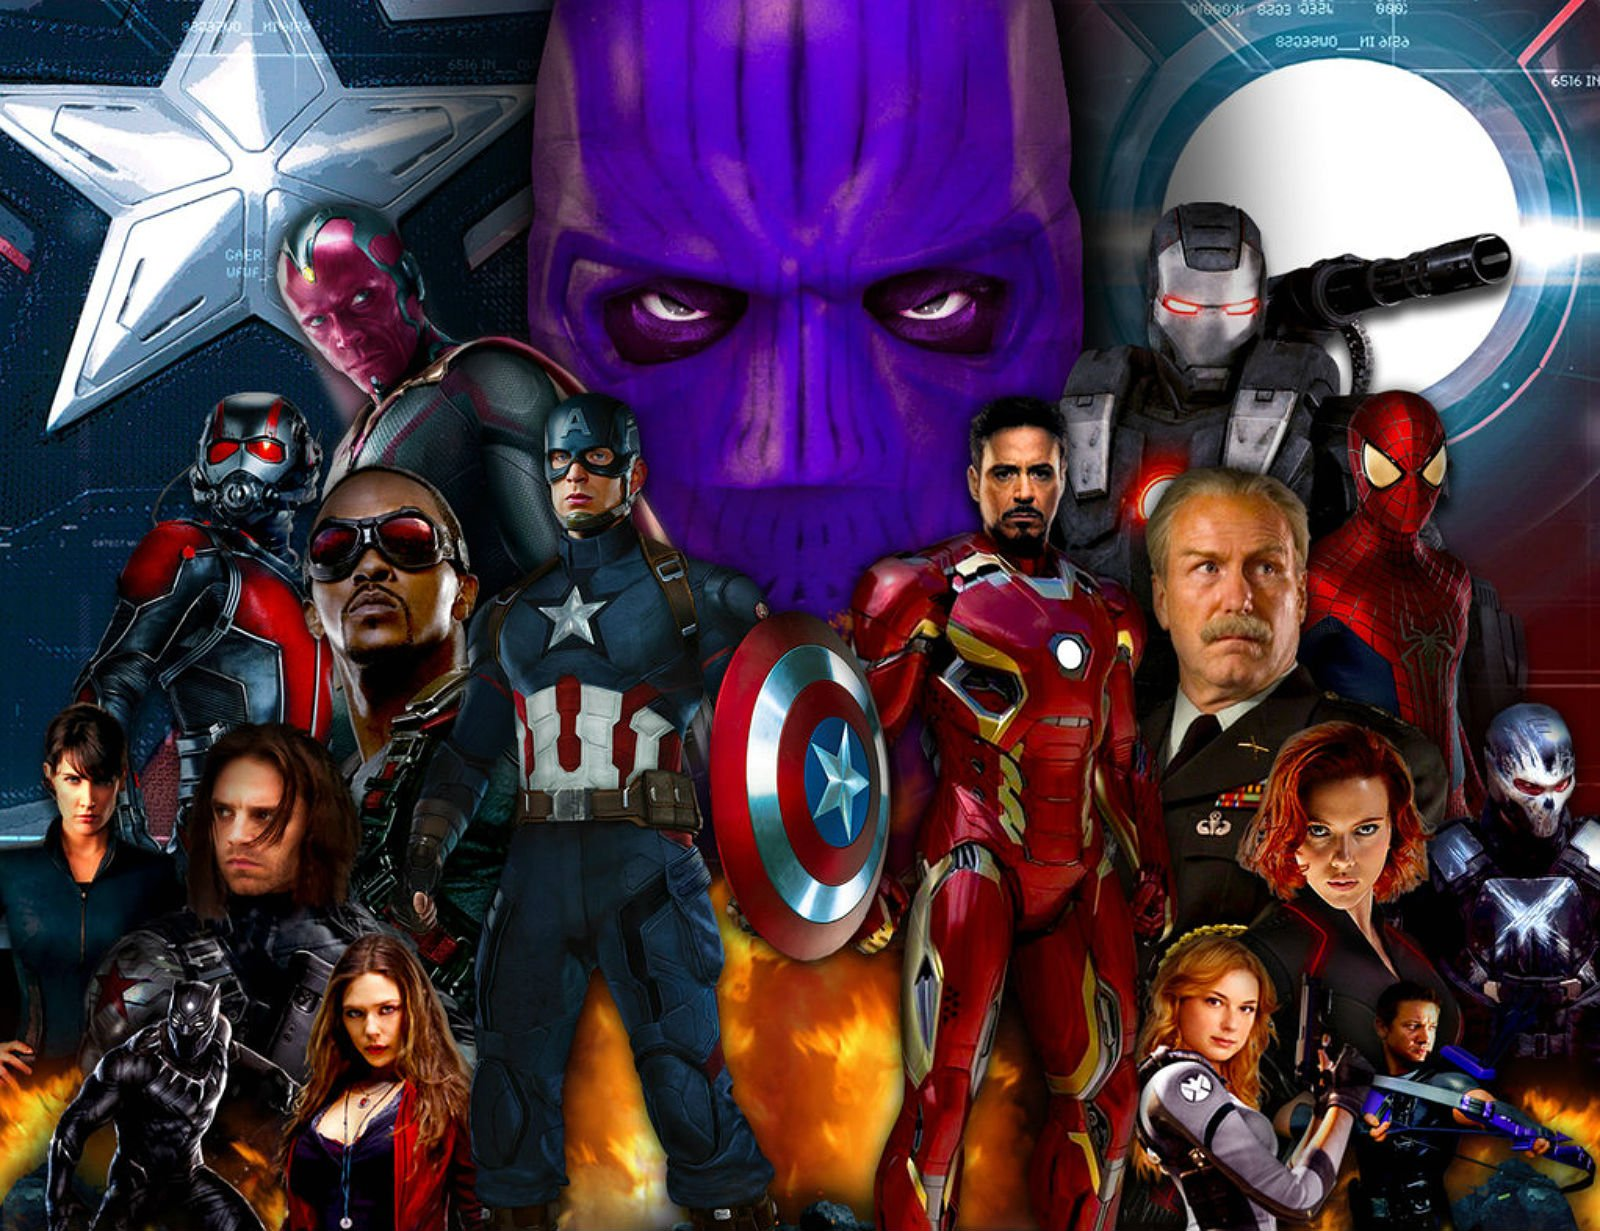 action fighting 1cacw warrior sci fi avengers wallpaper background 1600x1231